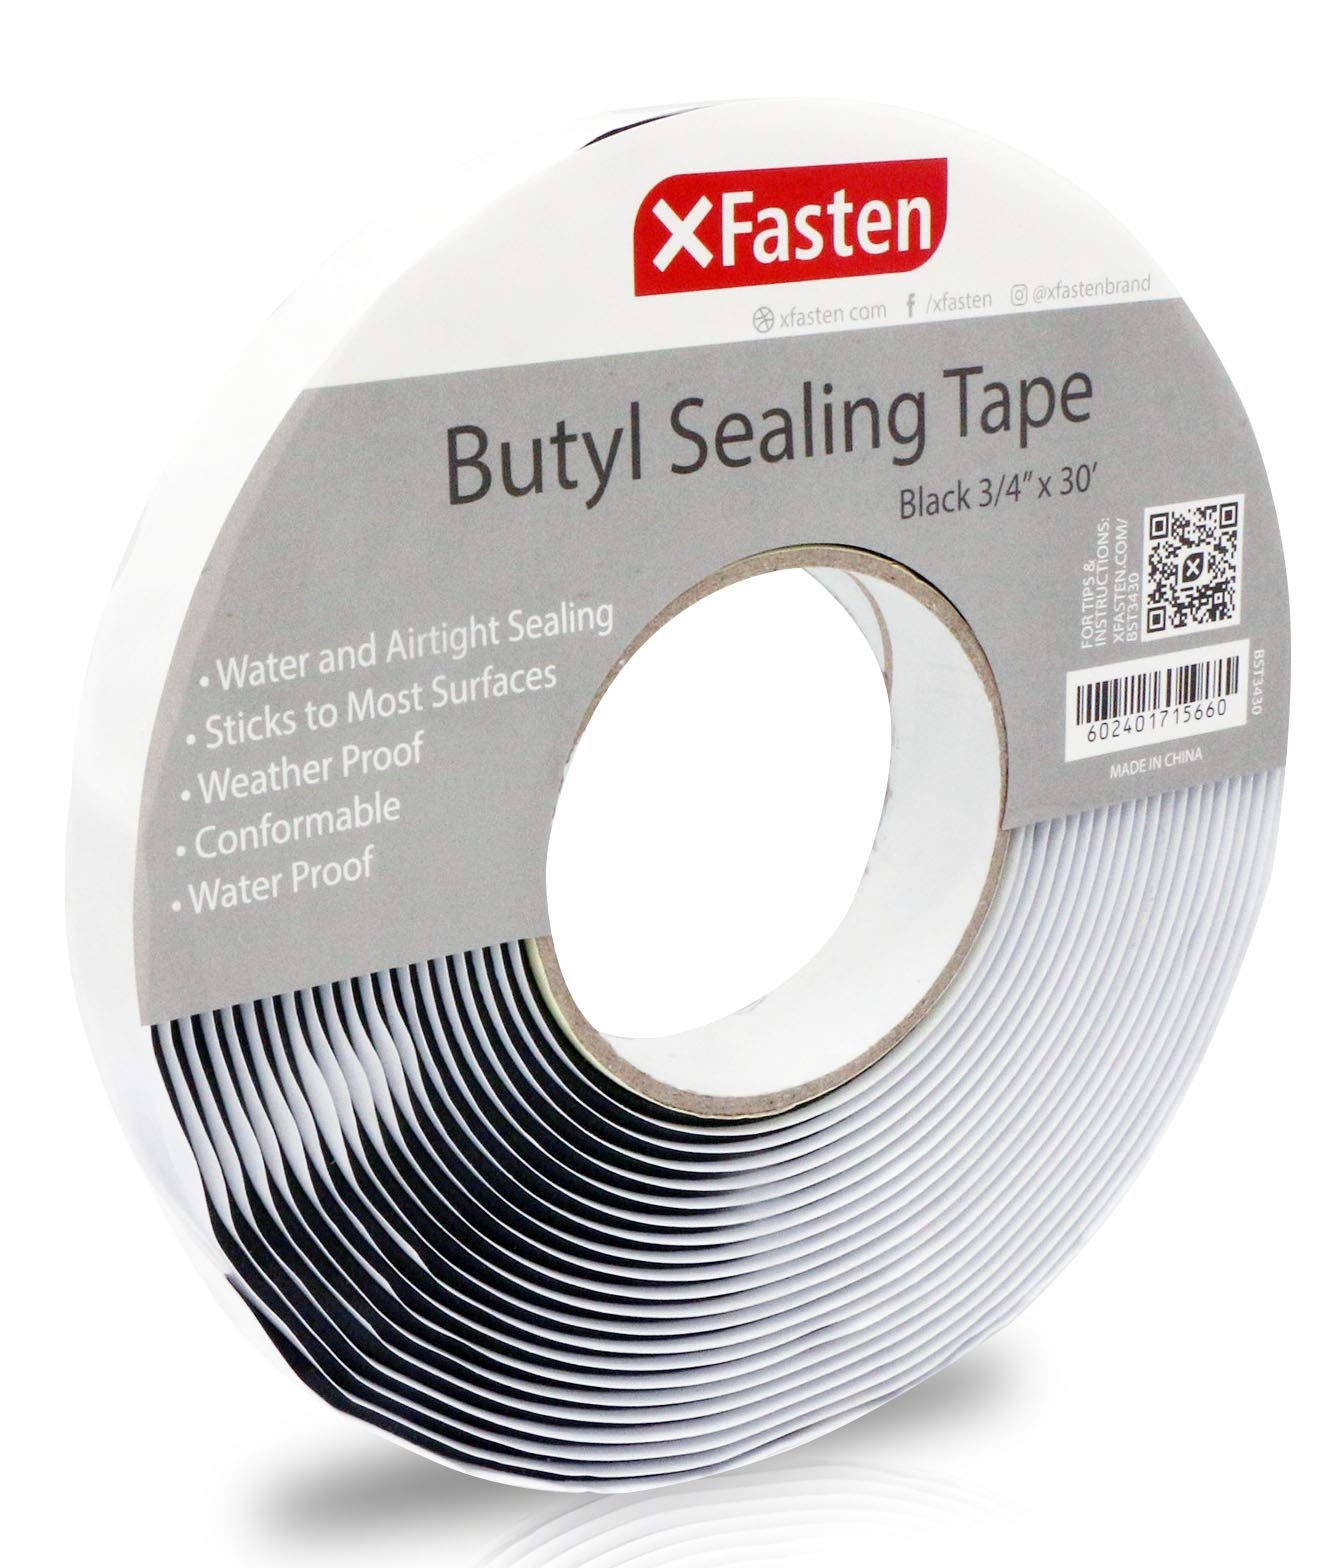 Xfasten Black Butyl Seal Tape 1 8 Inch X 3 4 Inch X 30 Foot Leak Proof Putty Tape For Rv Repair Window Boat Sealing Glass And Ed In 2020 Roof Patch Rv Repair Repair